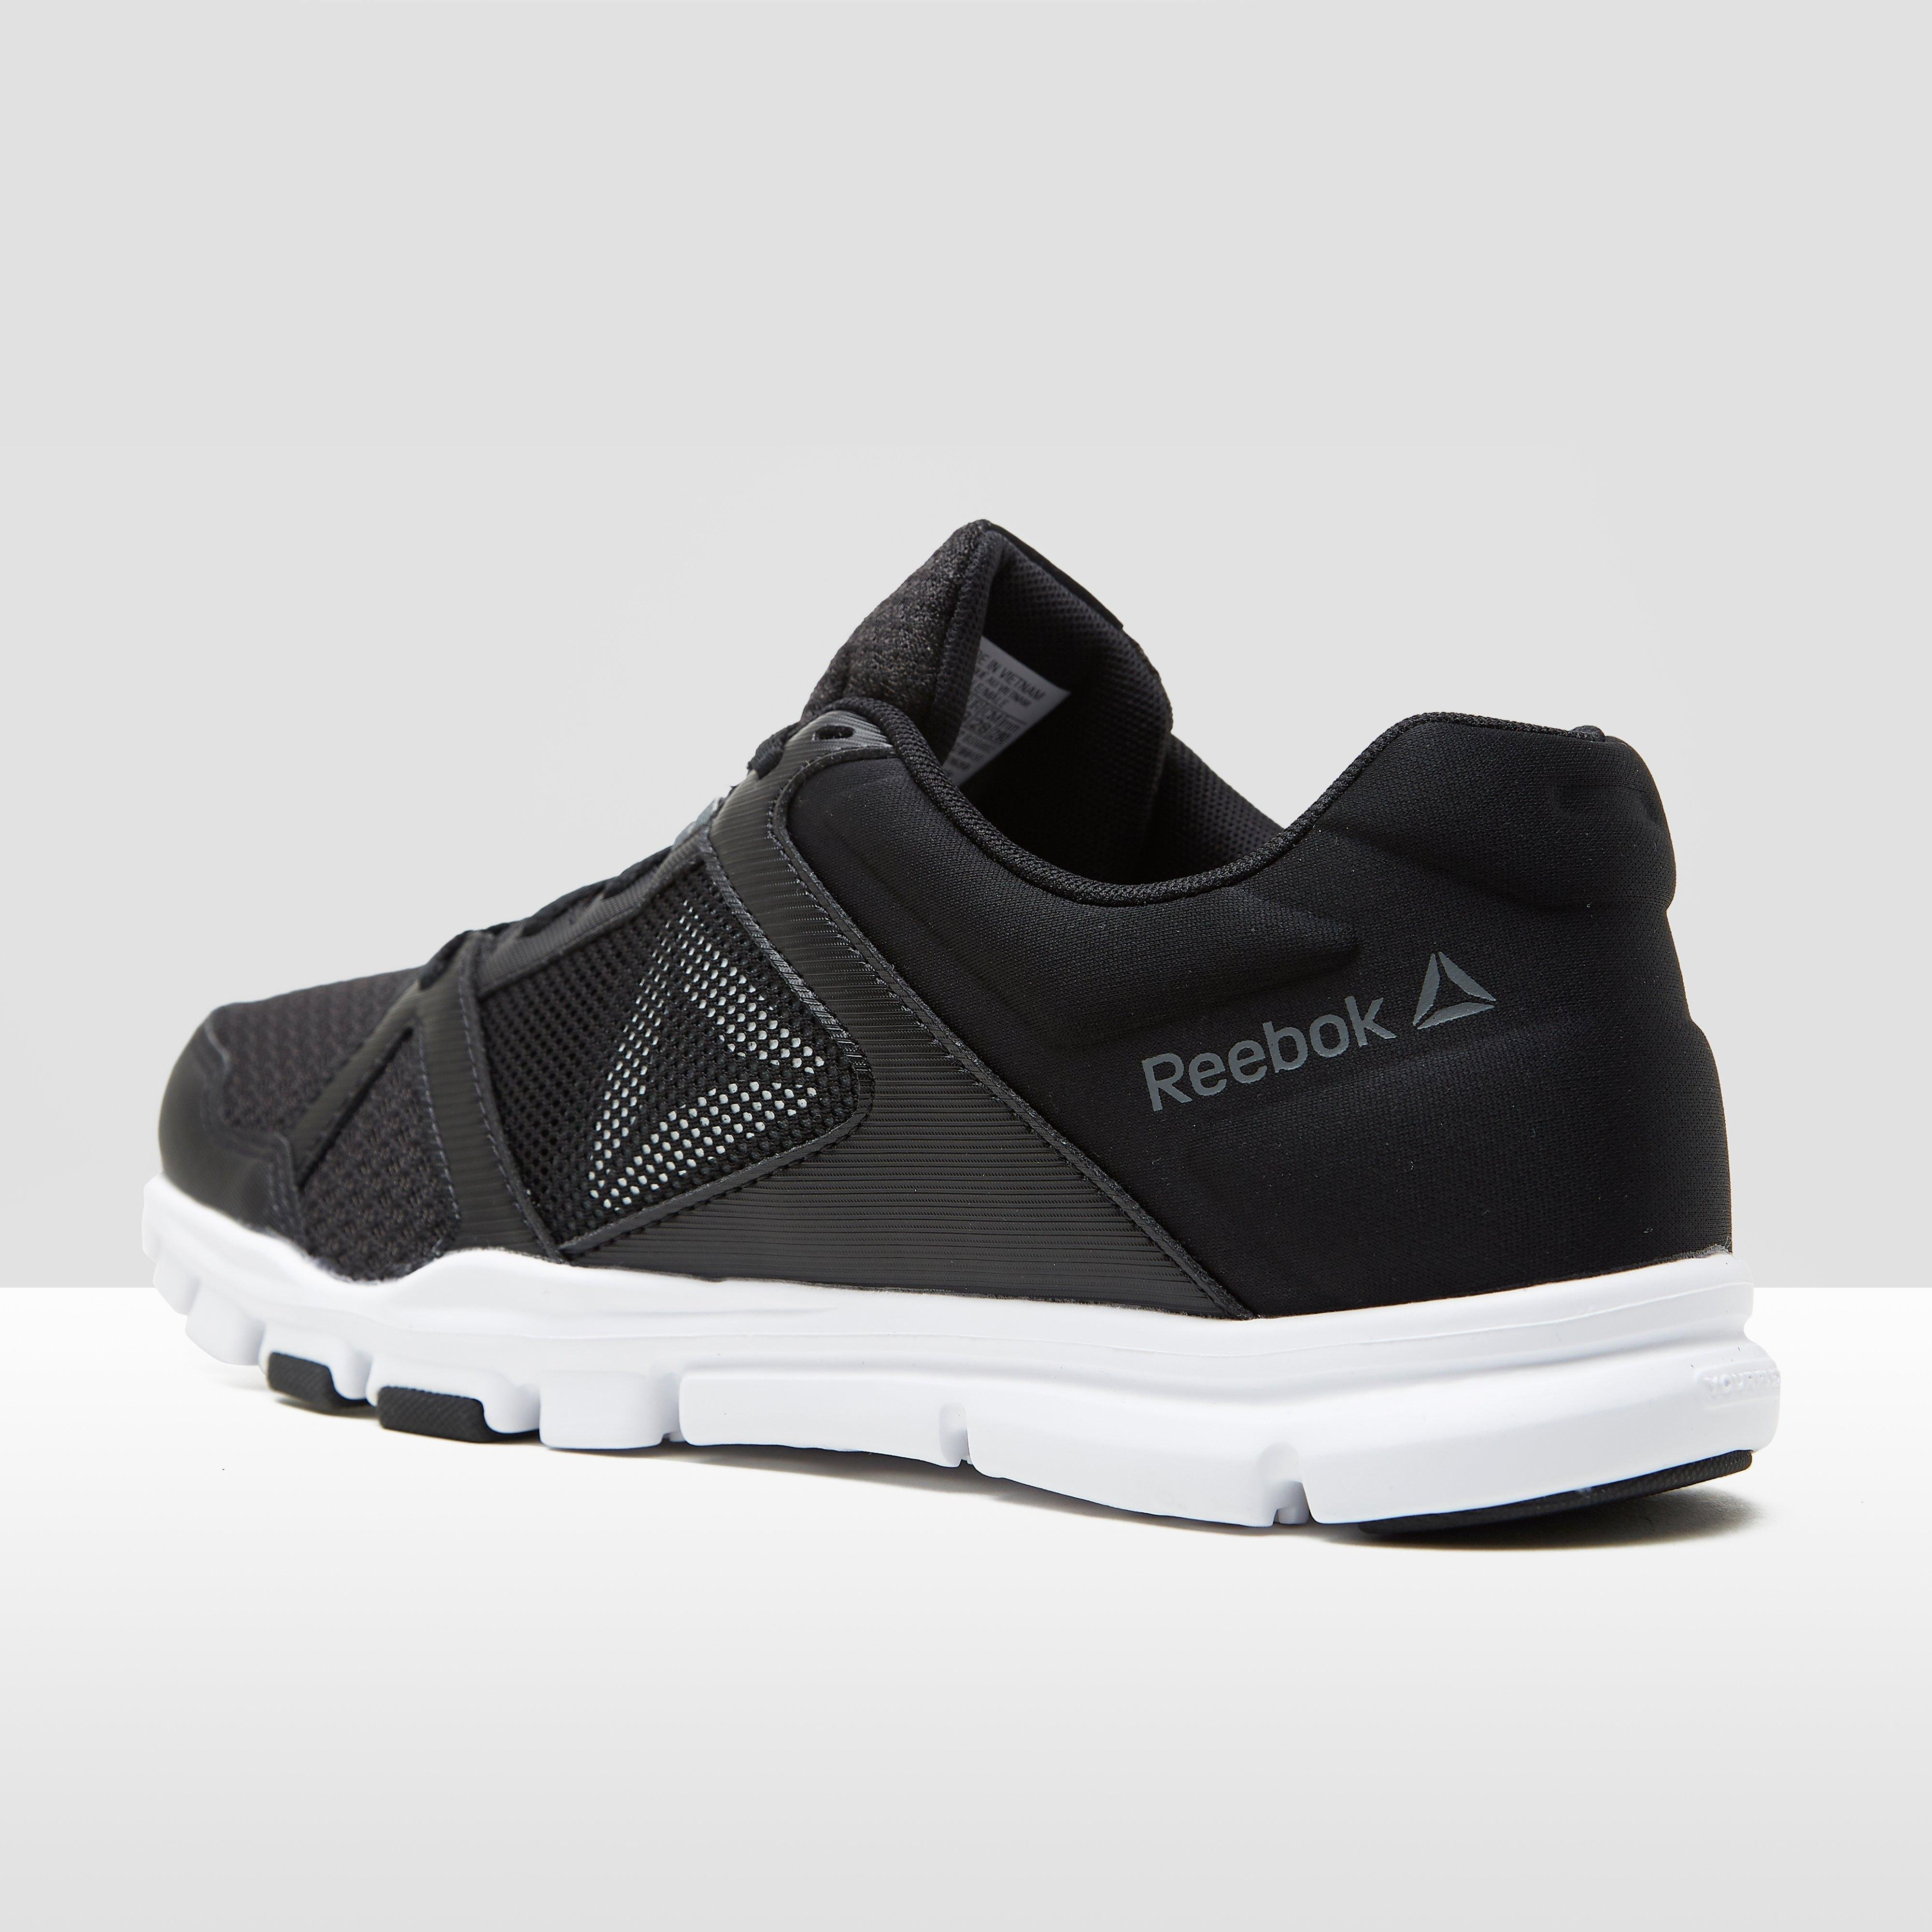 REEBOK YOURFLEX TRAIN 10 MT SPORTSCHOENEN ZWART/WIT HEREN